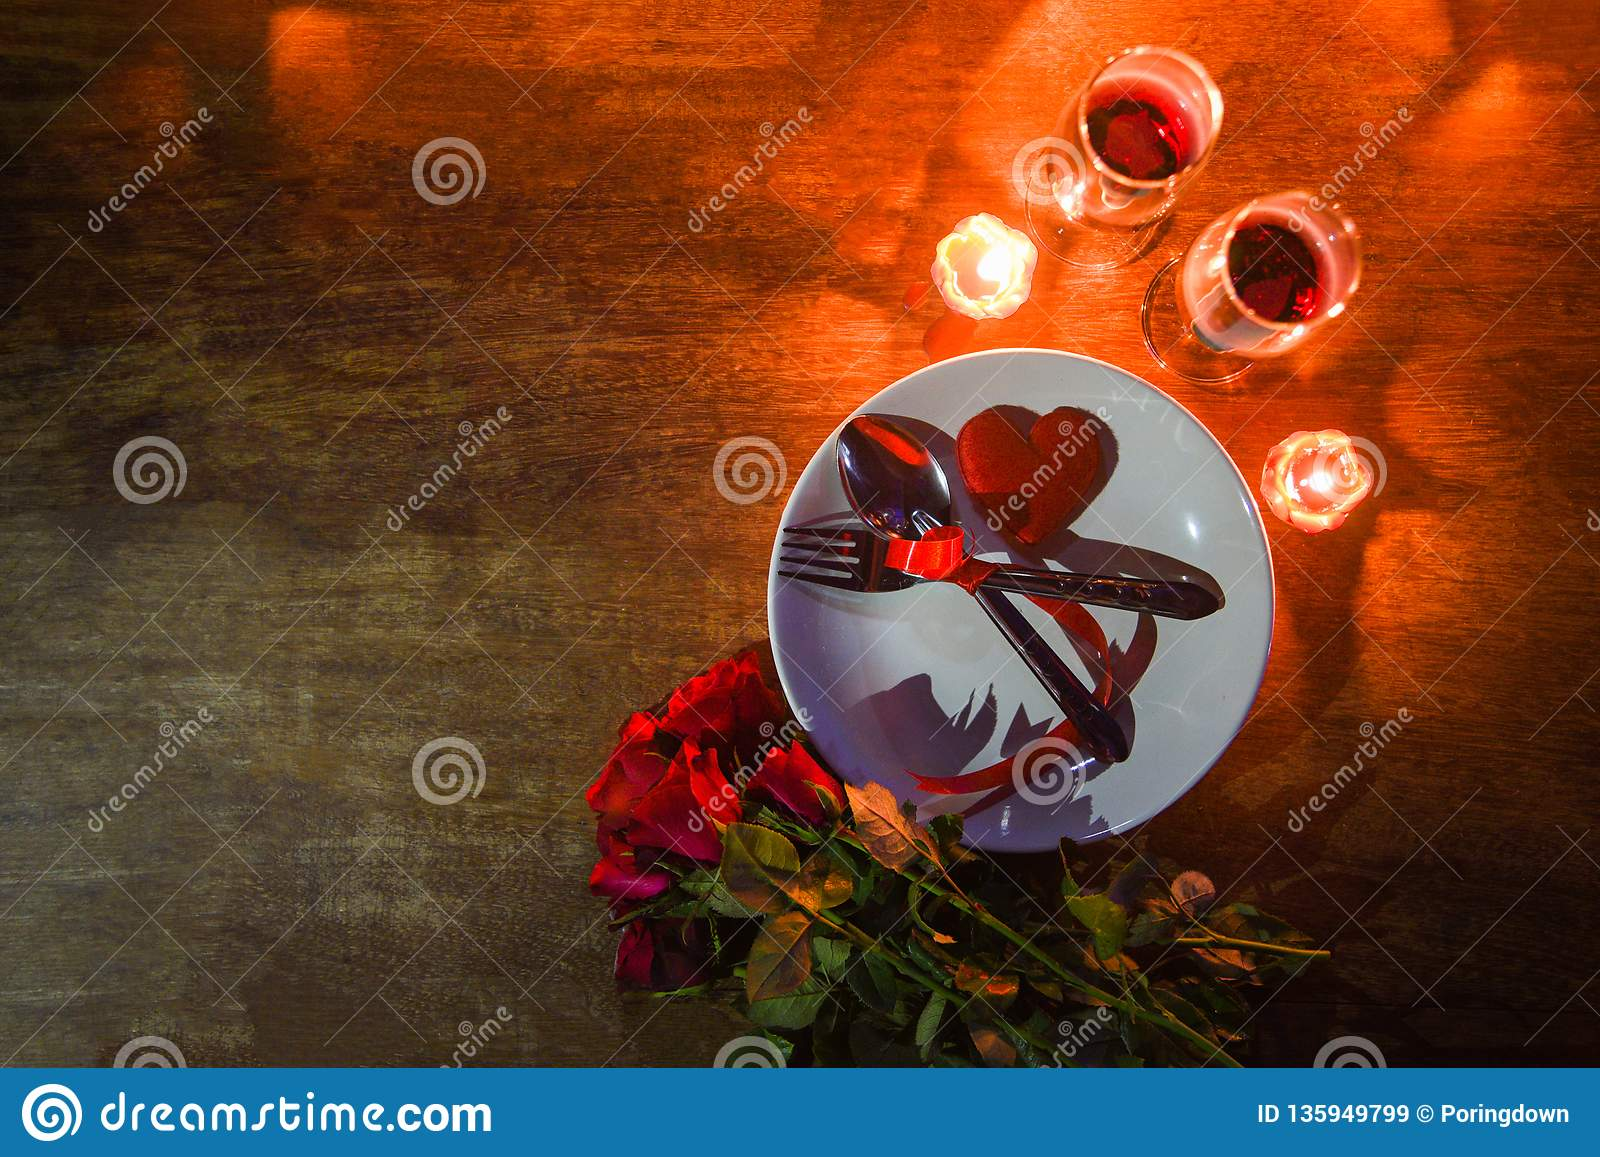 Valentines dinner romantic love conceptRomantic table setting decorated with fork spoon on plate and couple champagne glass wine